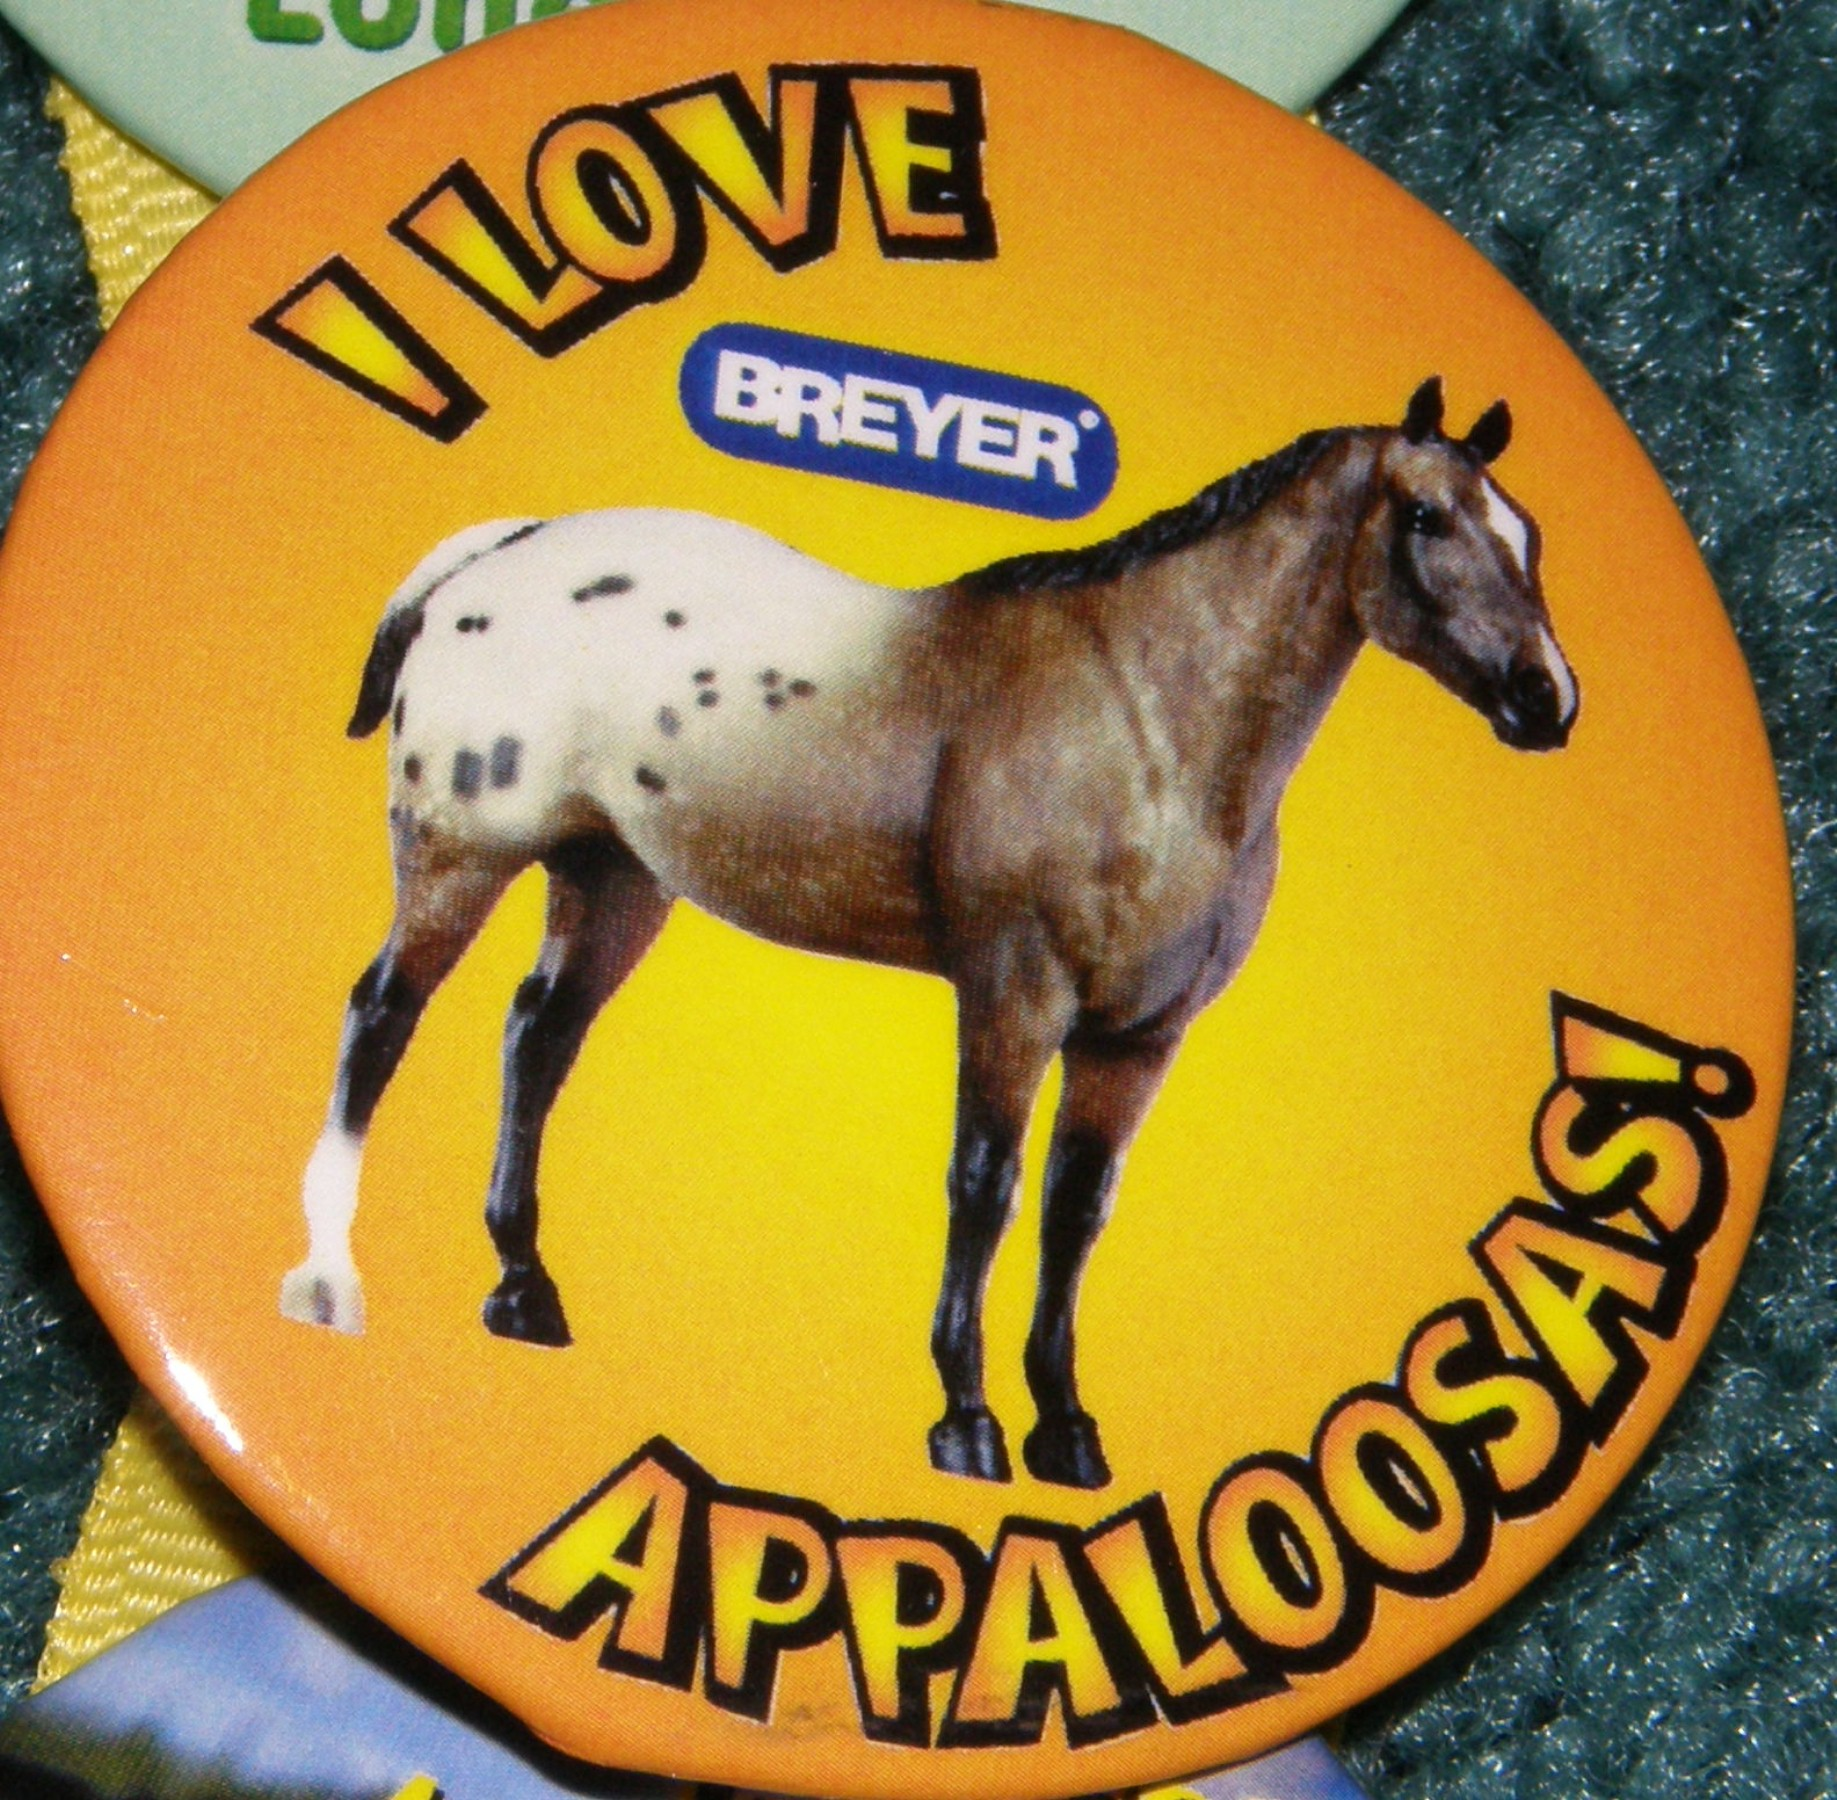 #1140 Foundation Appaloosa Horse I Love Appaloosas Breyer Button Pin